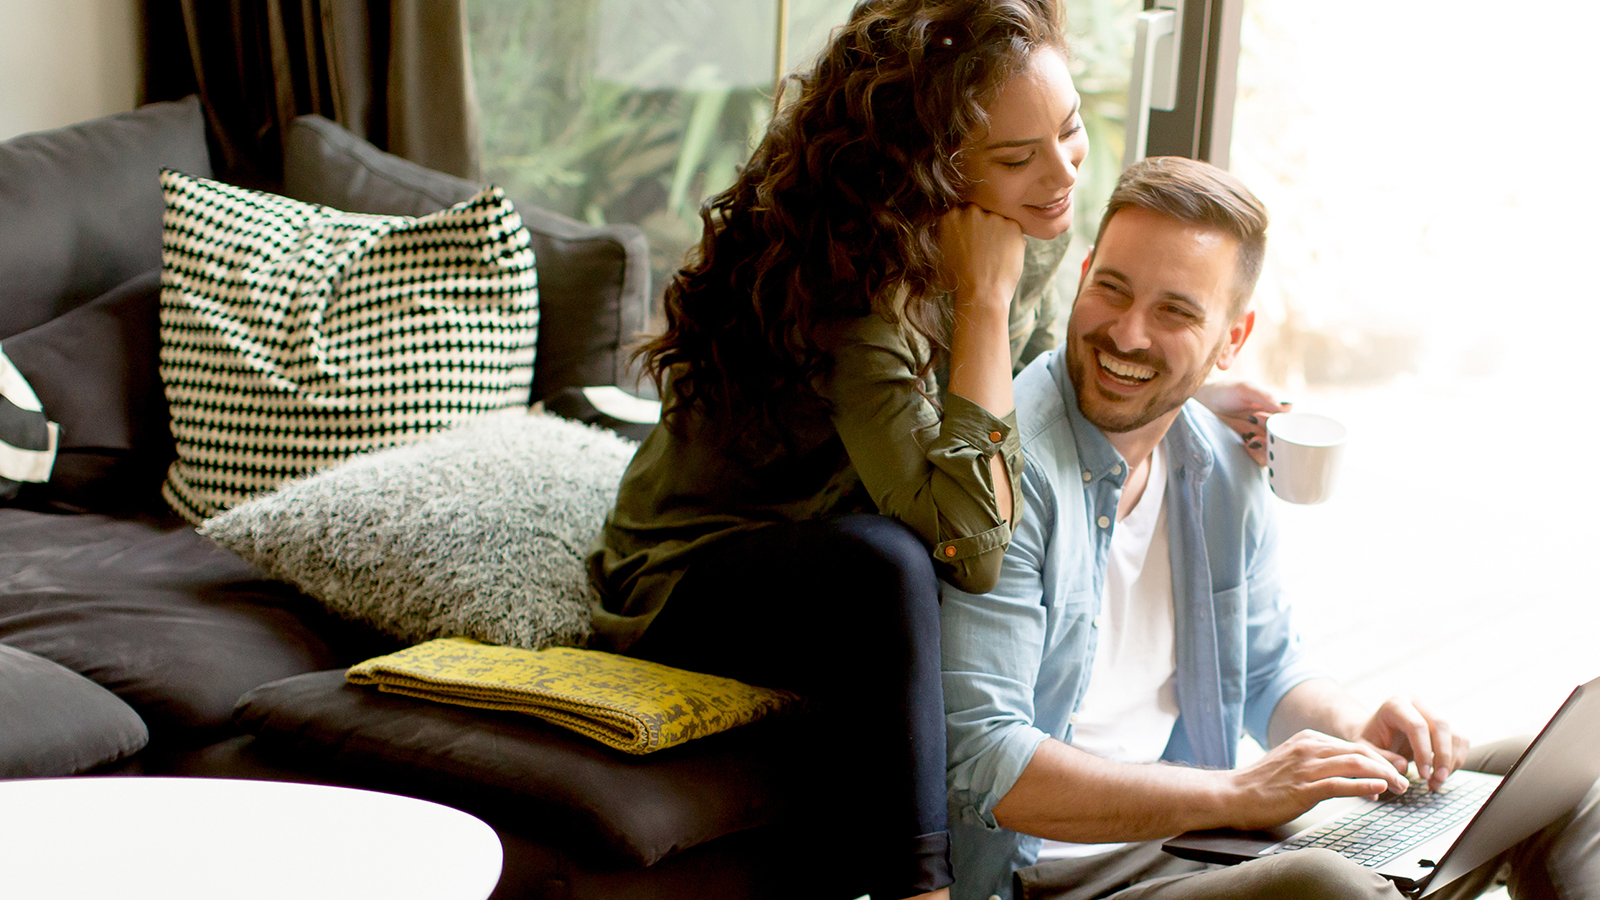 A laughing man on a computer with a woman leaning on his shoulders